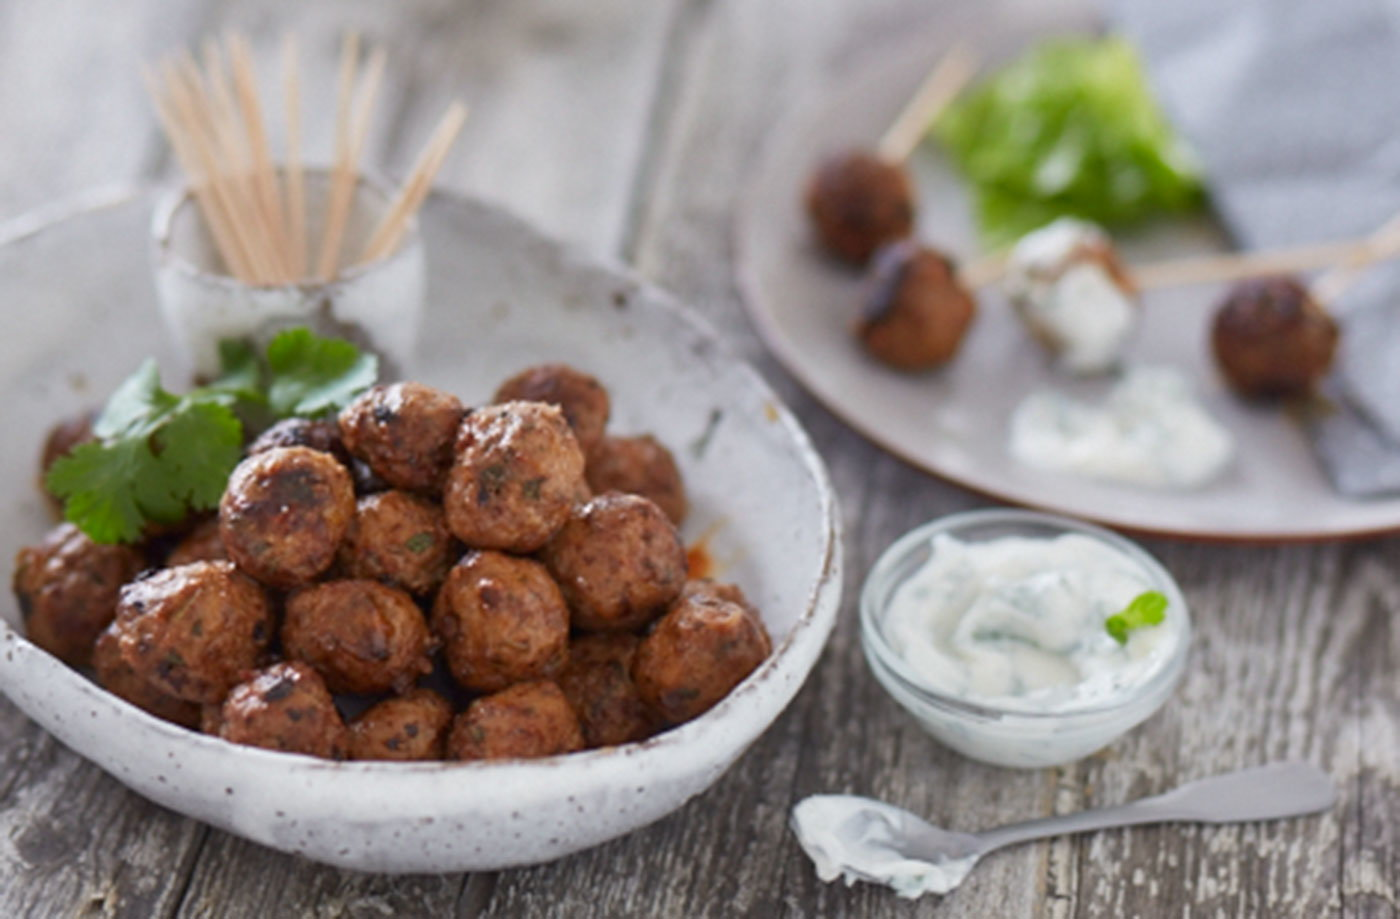 Tandoori lamb balls with raita dip recipe